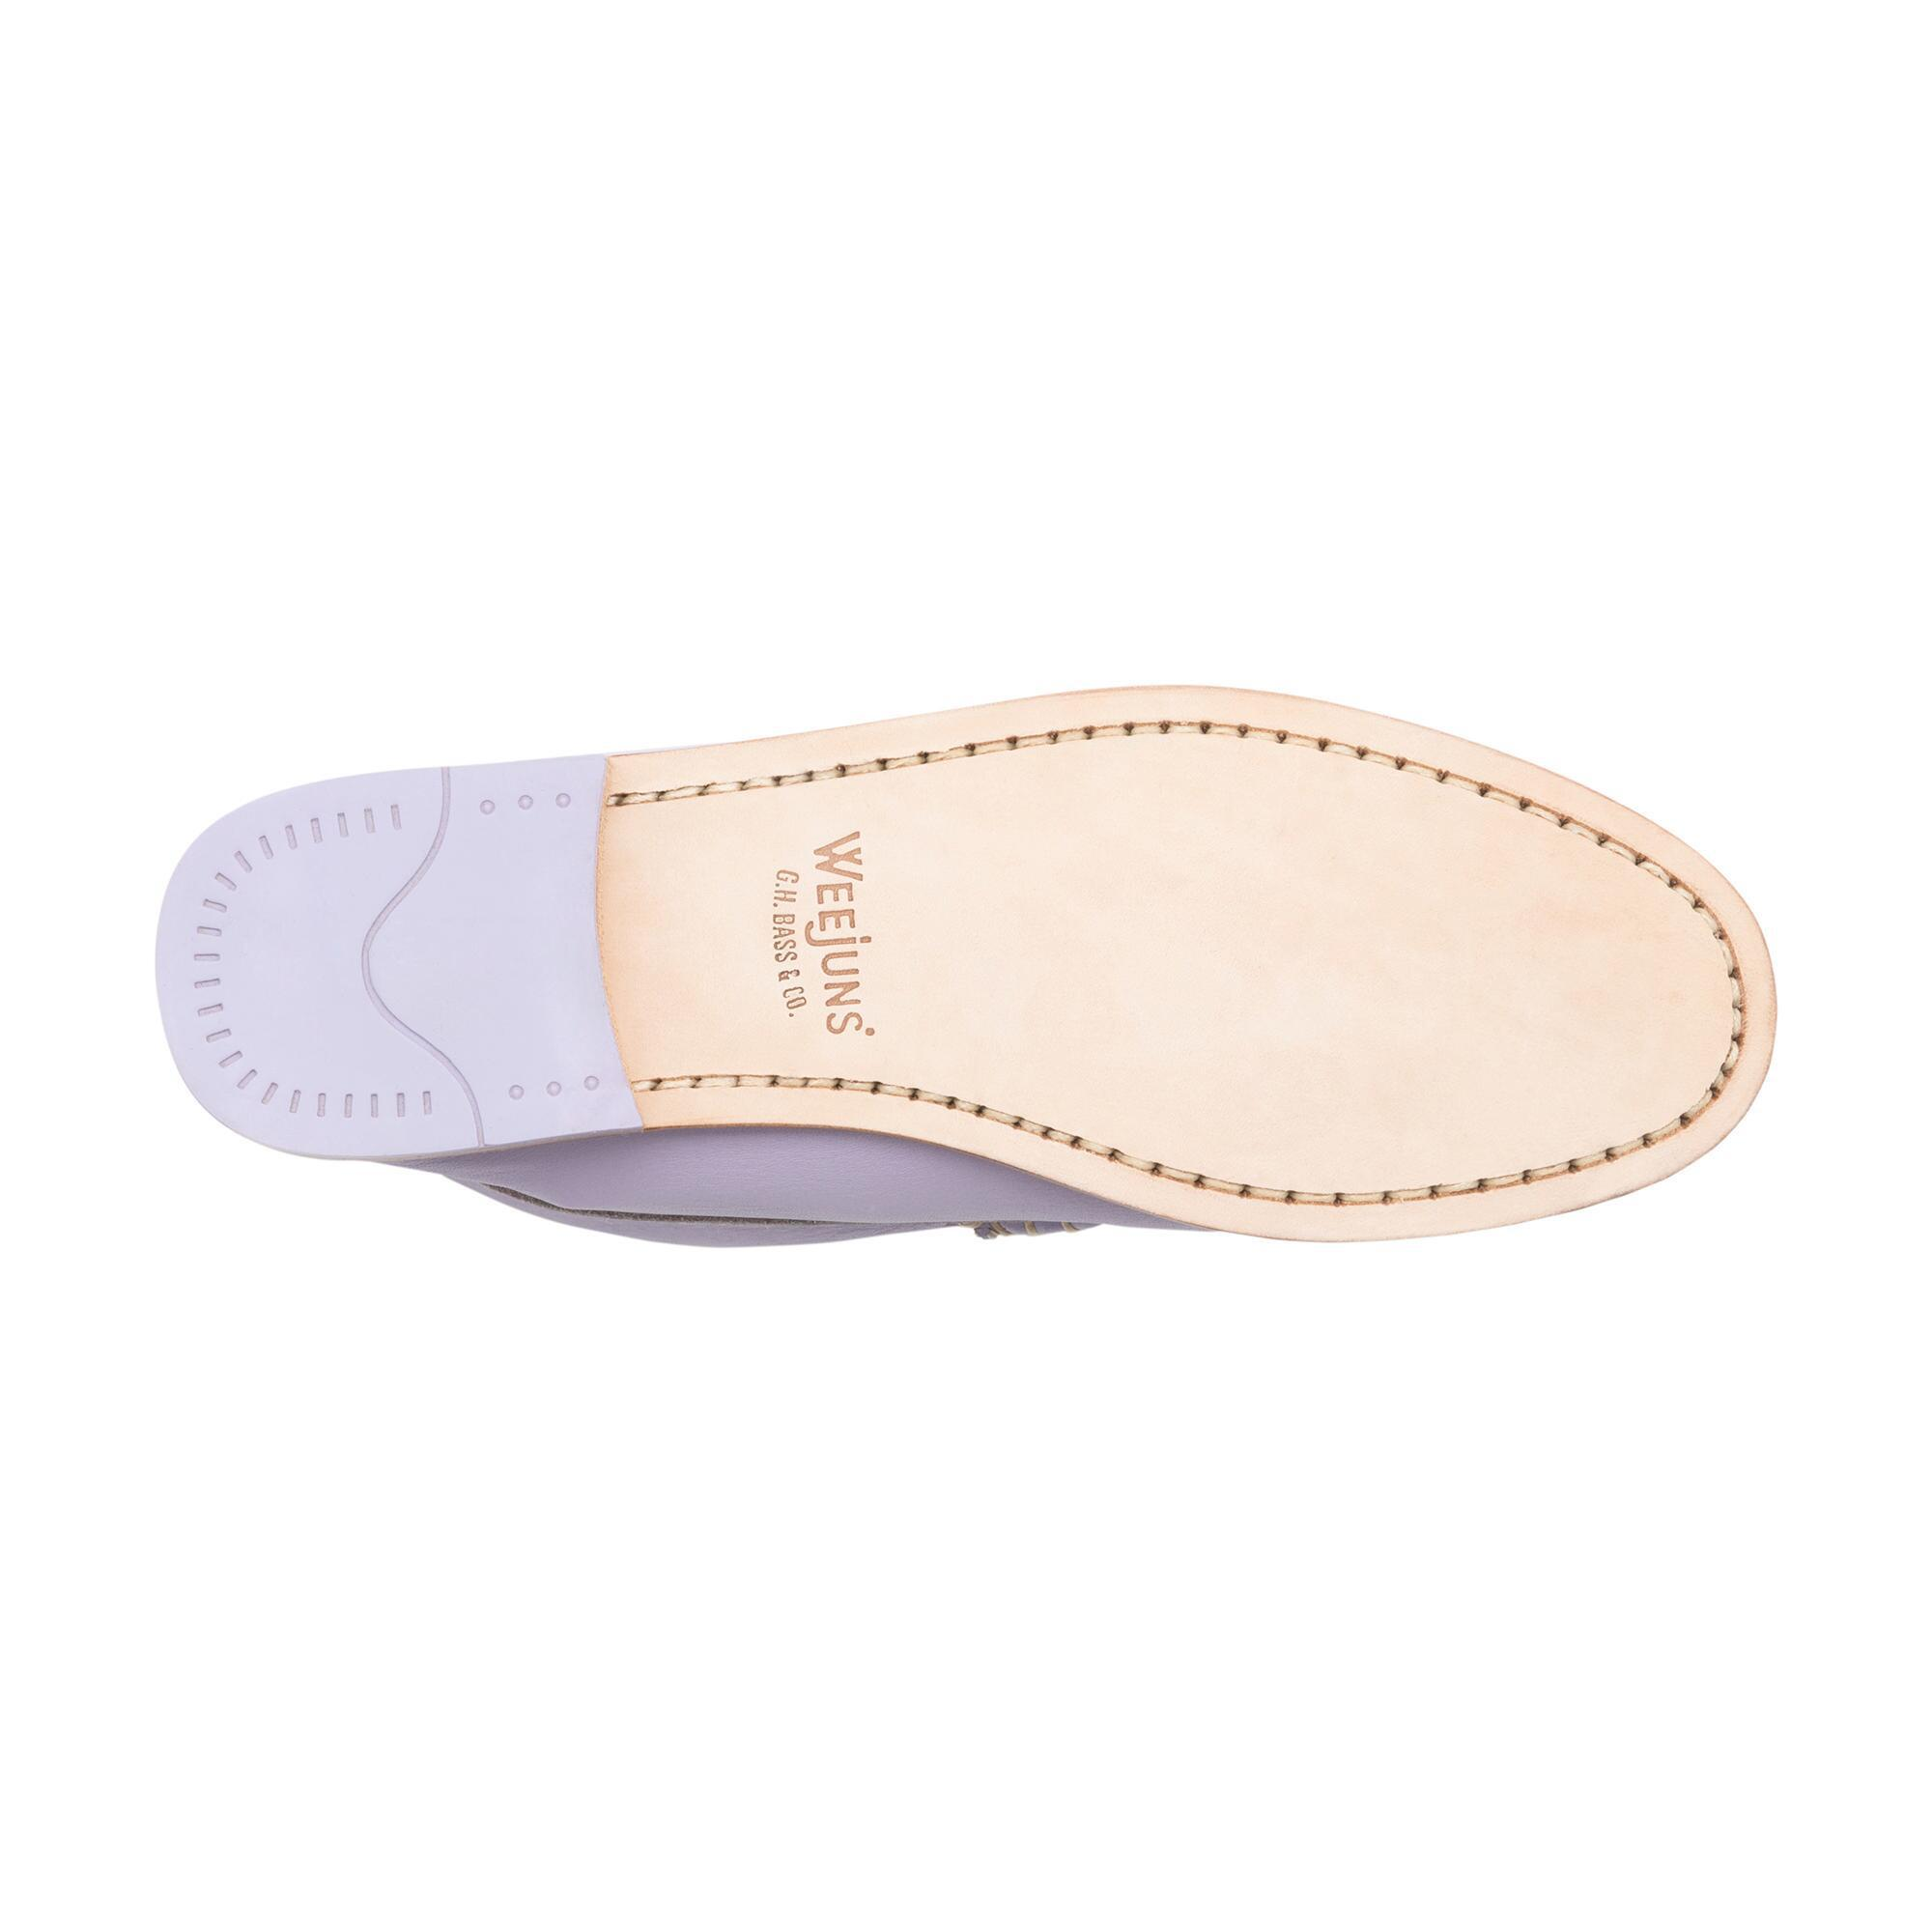 3cd537217e4 Lyst - G.H.BASS Whitney Natural Sole Weejuns in Purple